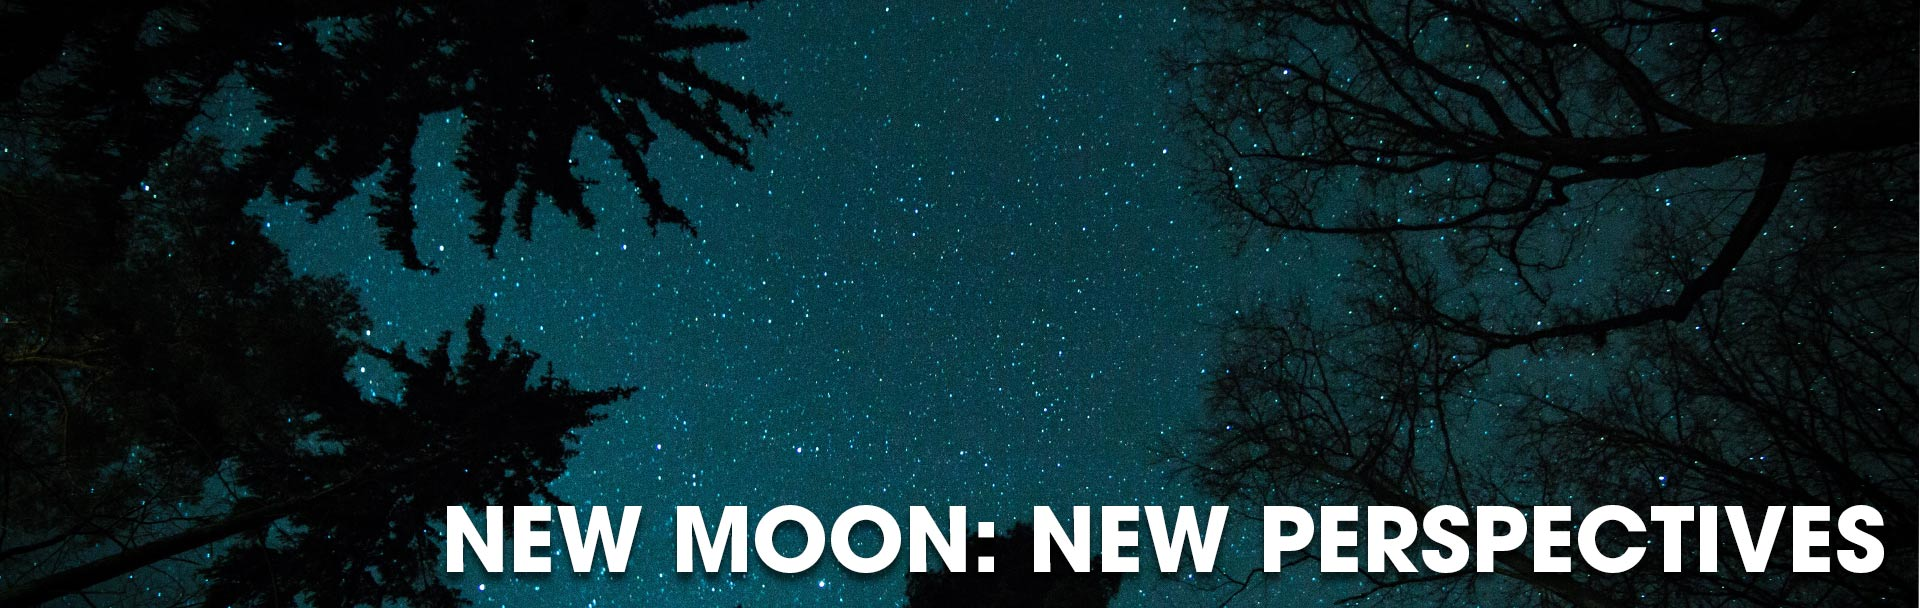 New Moon Workshop run by Joan Frew, Betty Jane Ware, Kat Wojdyla and Sophie O'Brien